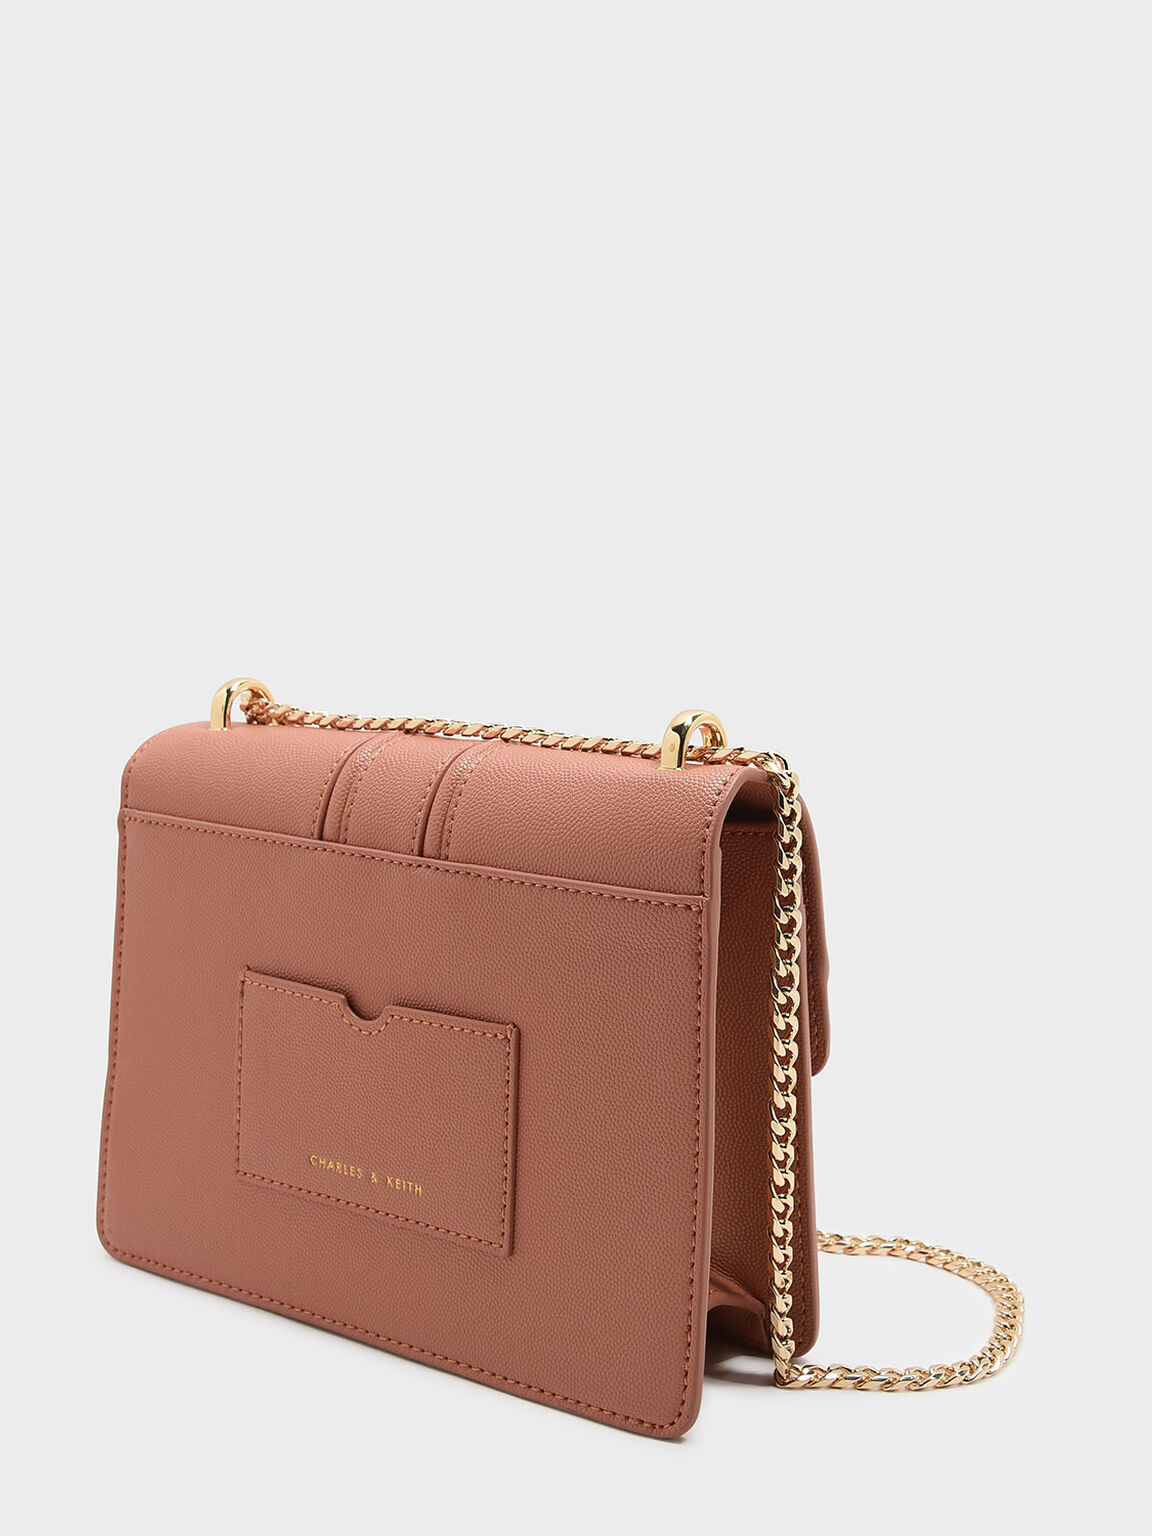 Push-Lock Shoulder Bag, Blush, hi-res